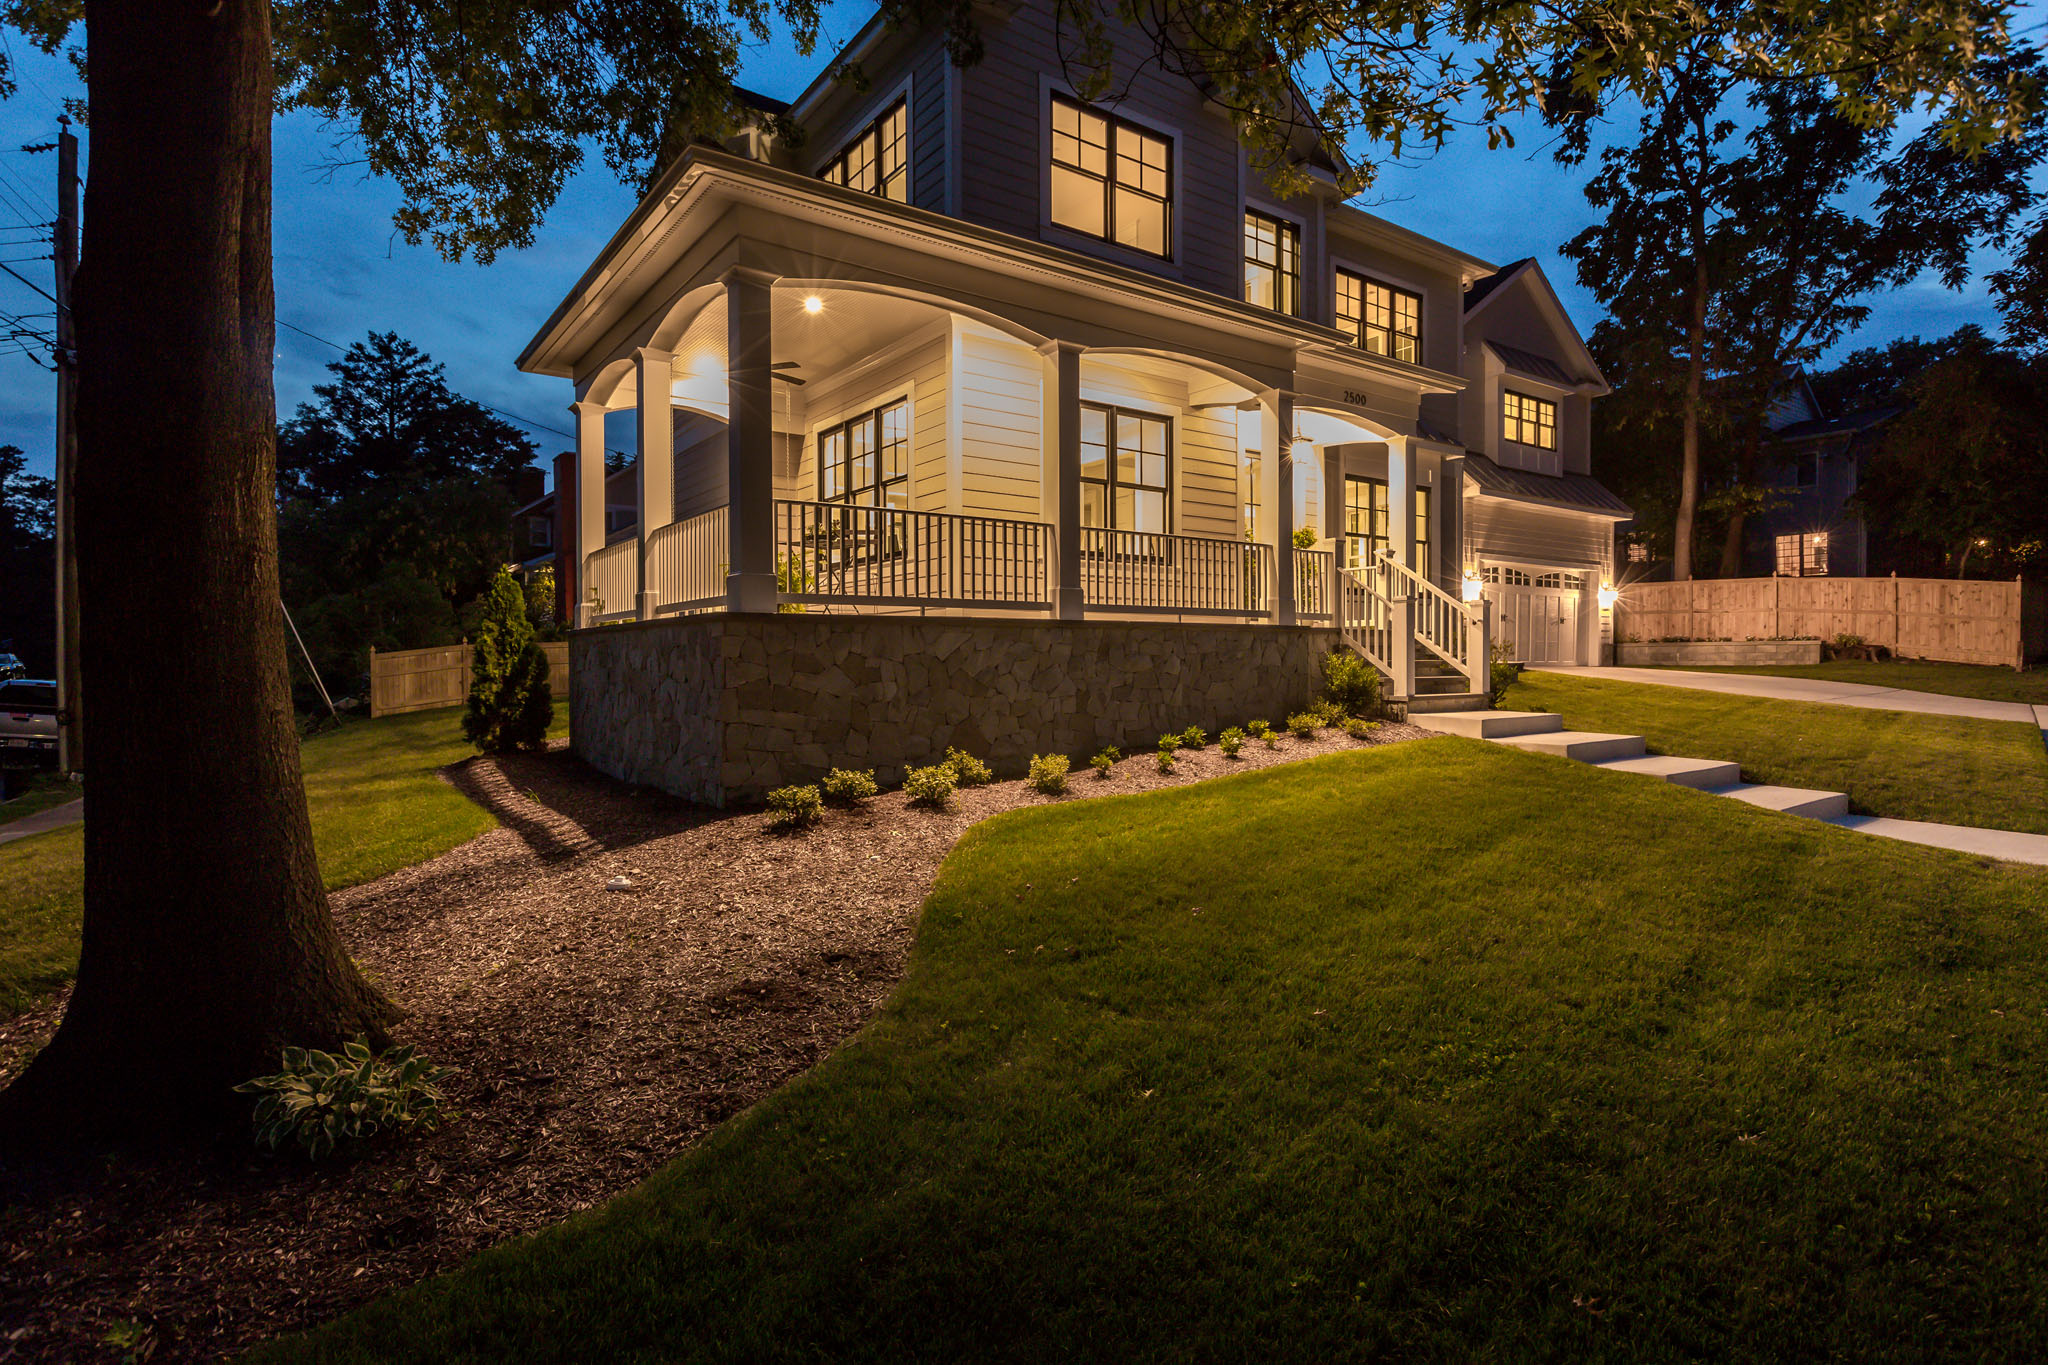 An inviting front porch to greet guests or dine el fresco. Custom Home by Custom Builder, North Arlington, VA 22207